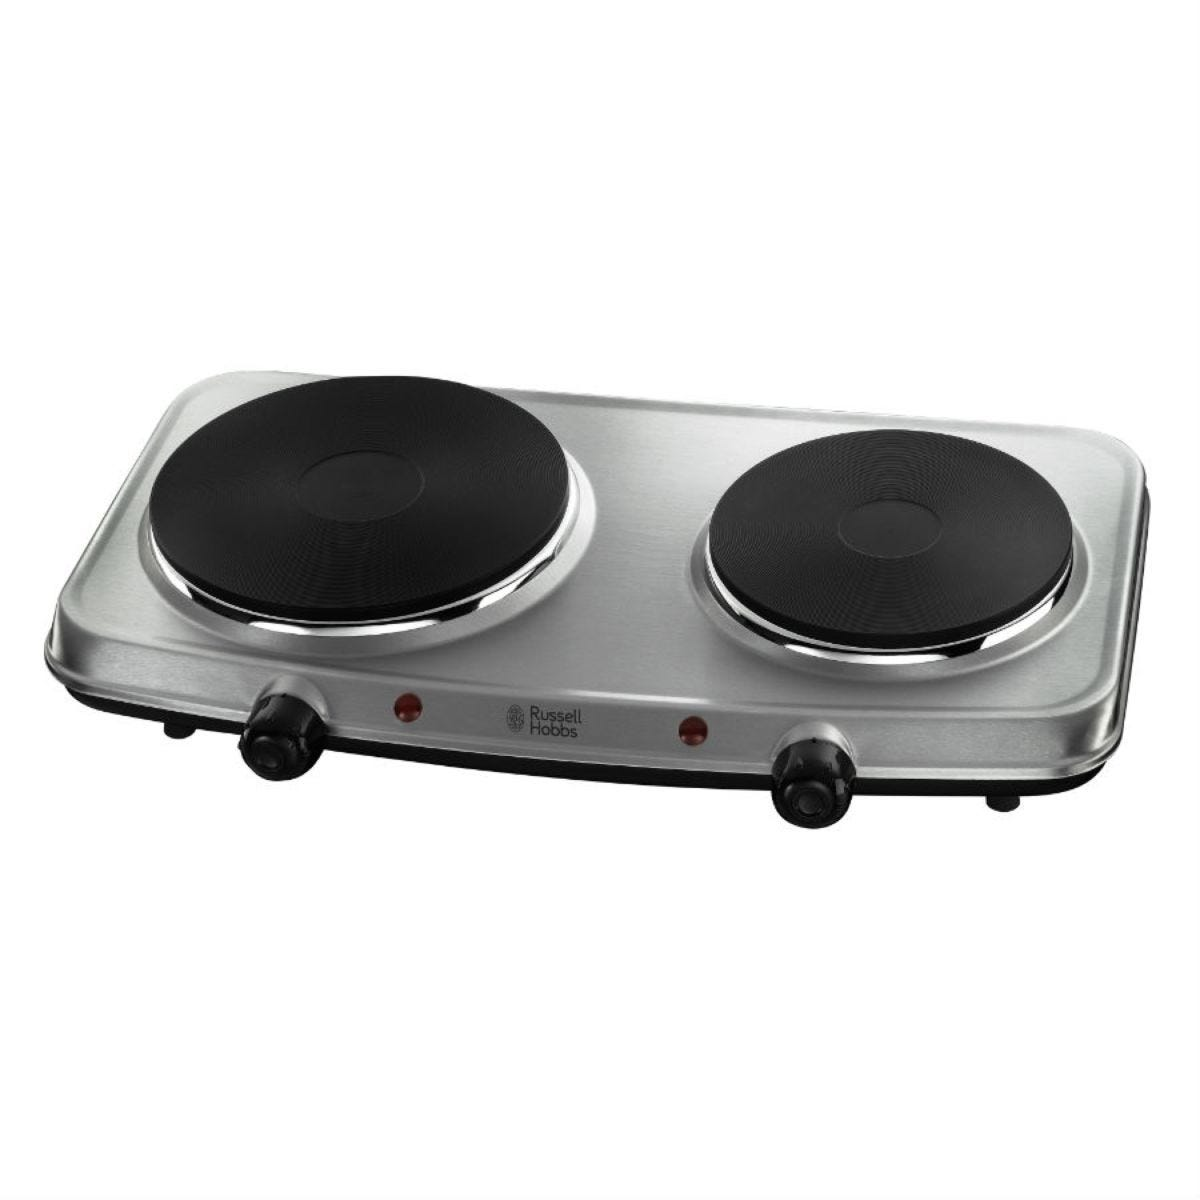 Russell Hobbs 15199 2 Plate Mini 2250W Electric Hob - Stainless Steel